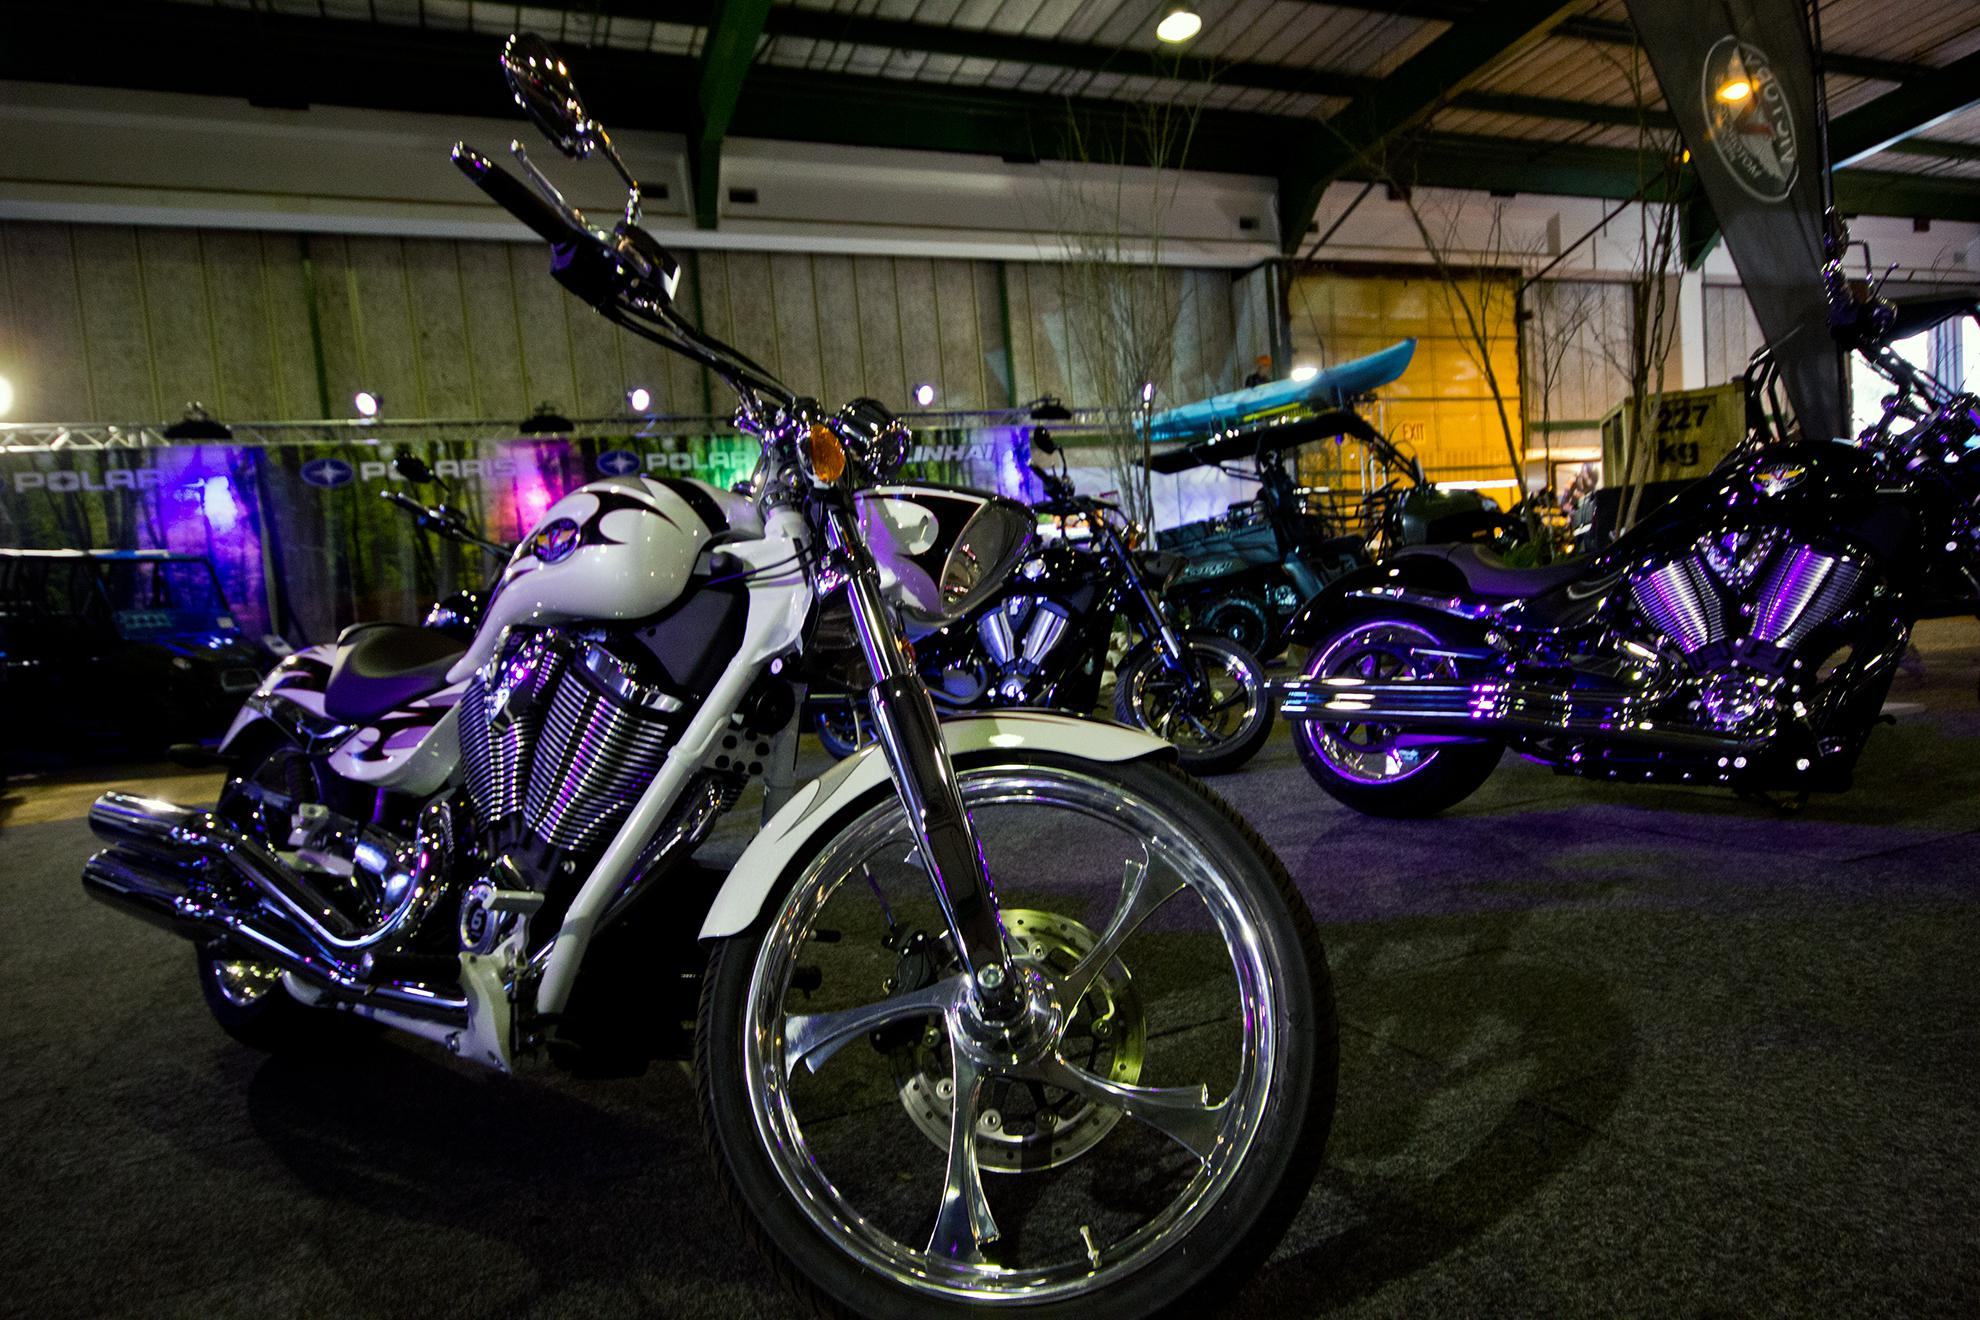 Victory-Johannesburg-Motorcycle-Show-2012-12